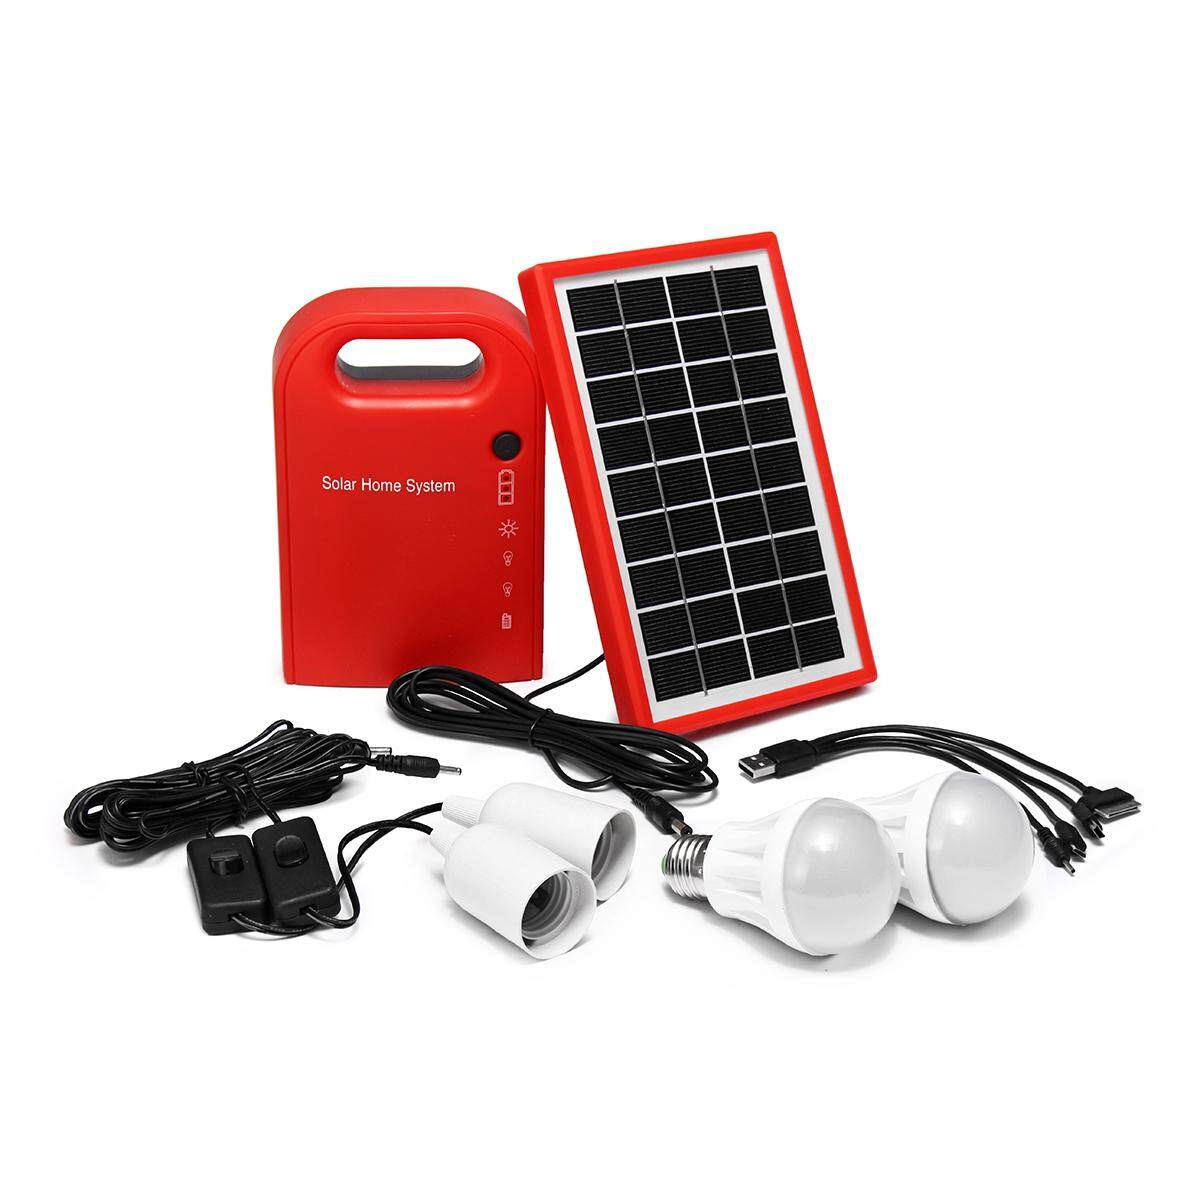 Portable Solar Power Lampu Panel LED Charger USB Home System Kit Taman Outdoor